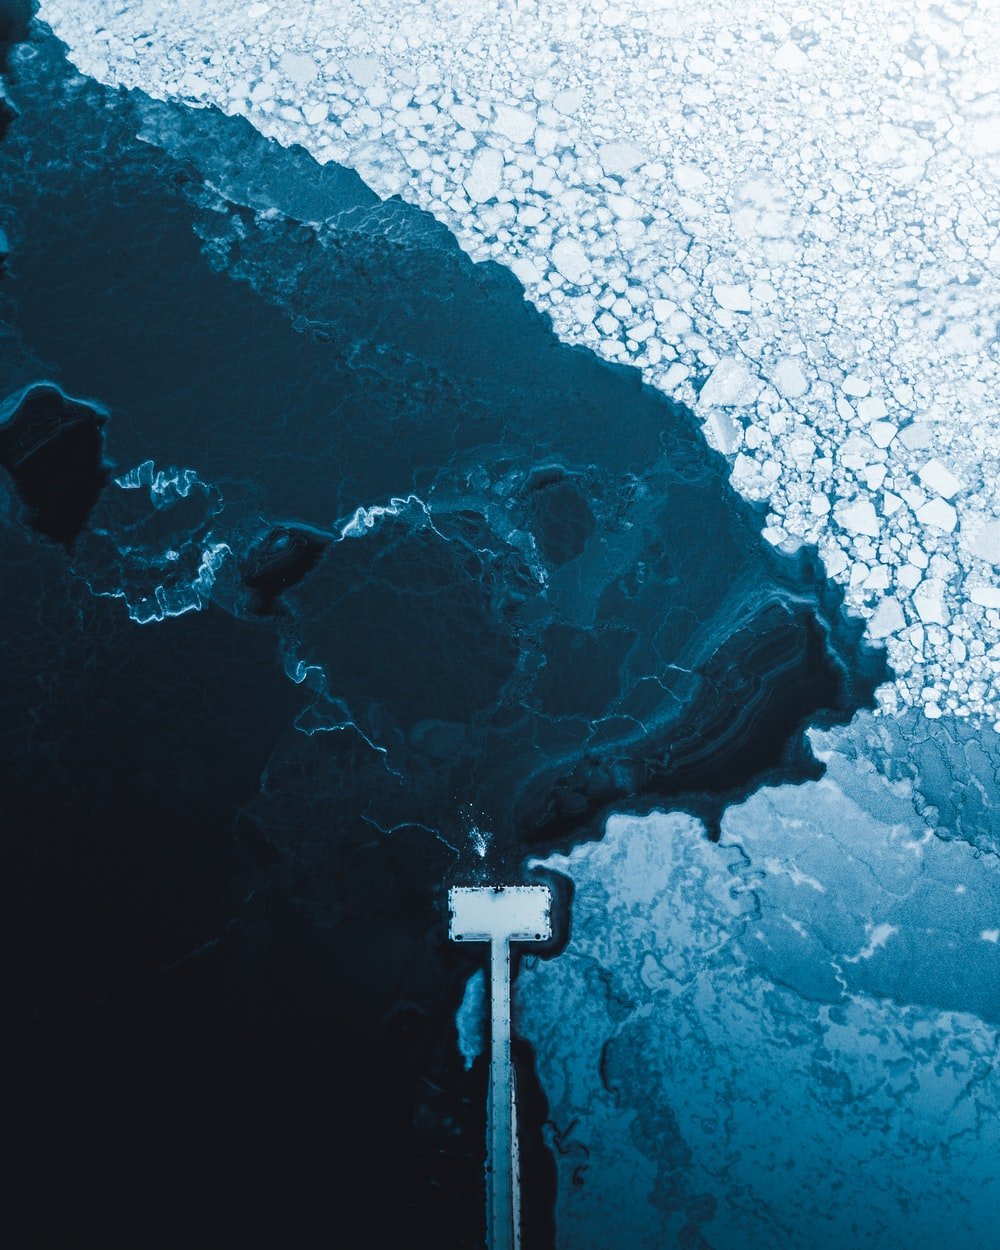 body of water and ice